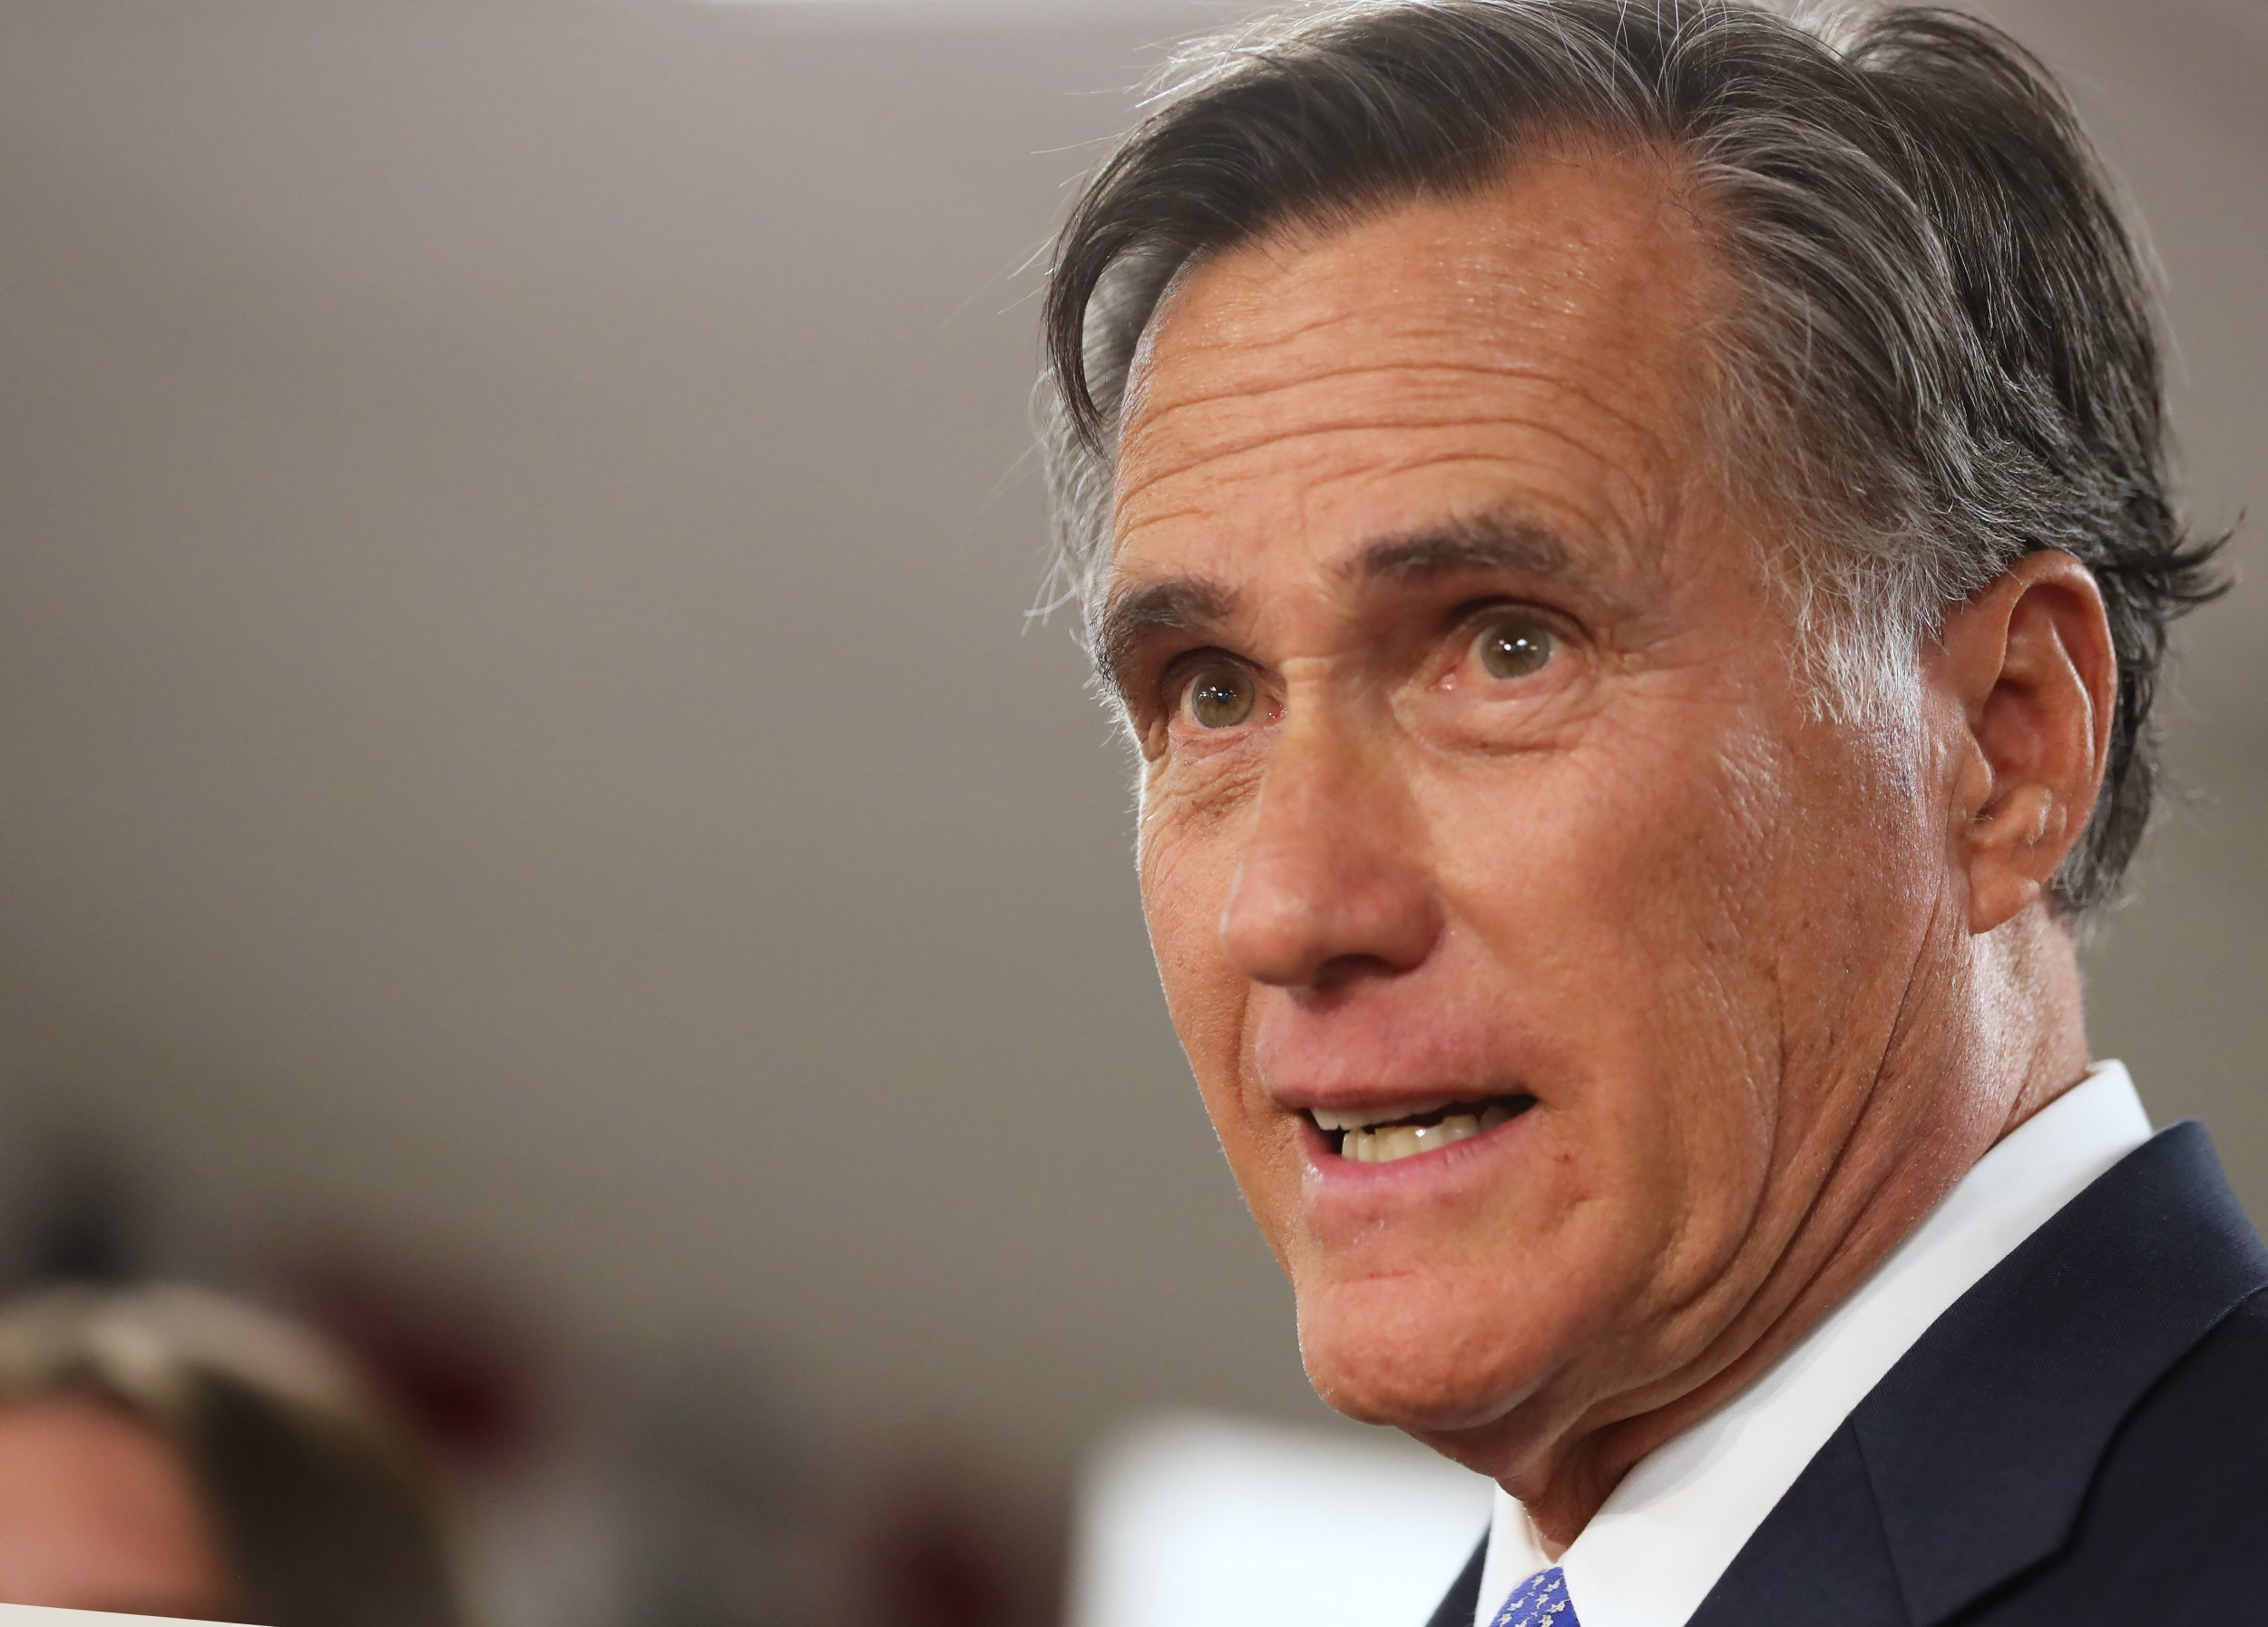 mitt romney birthday blows out candles